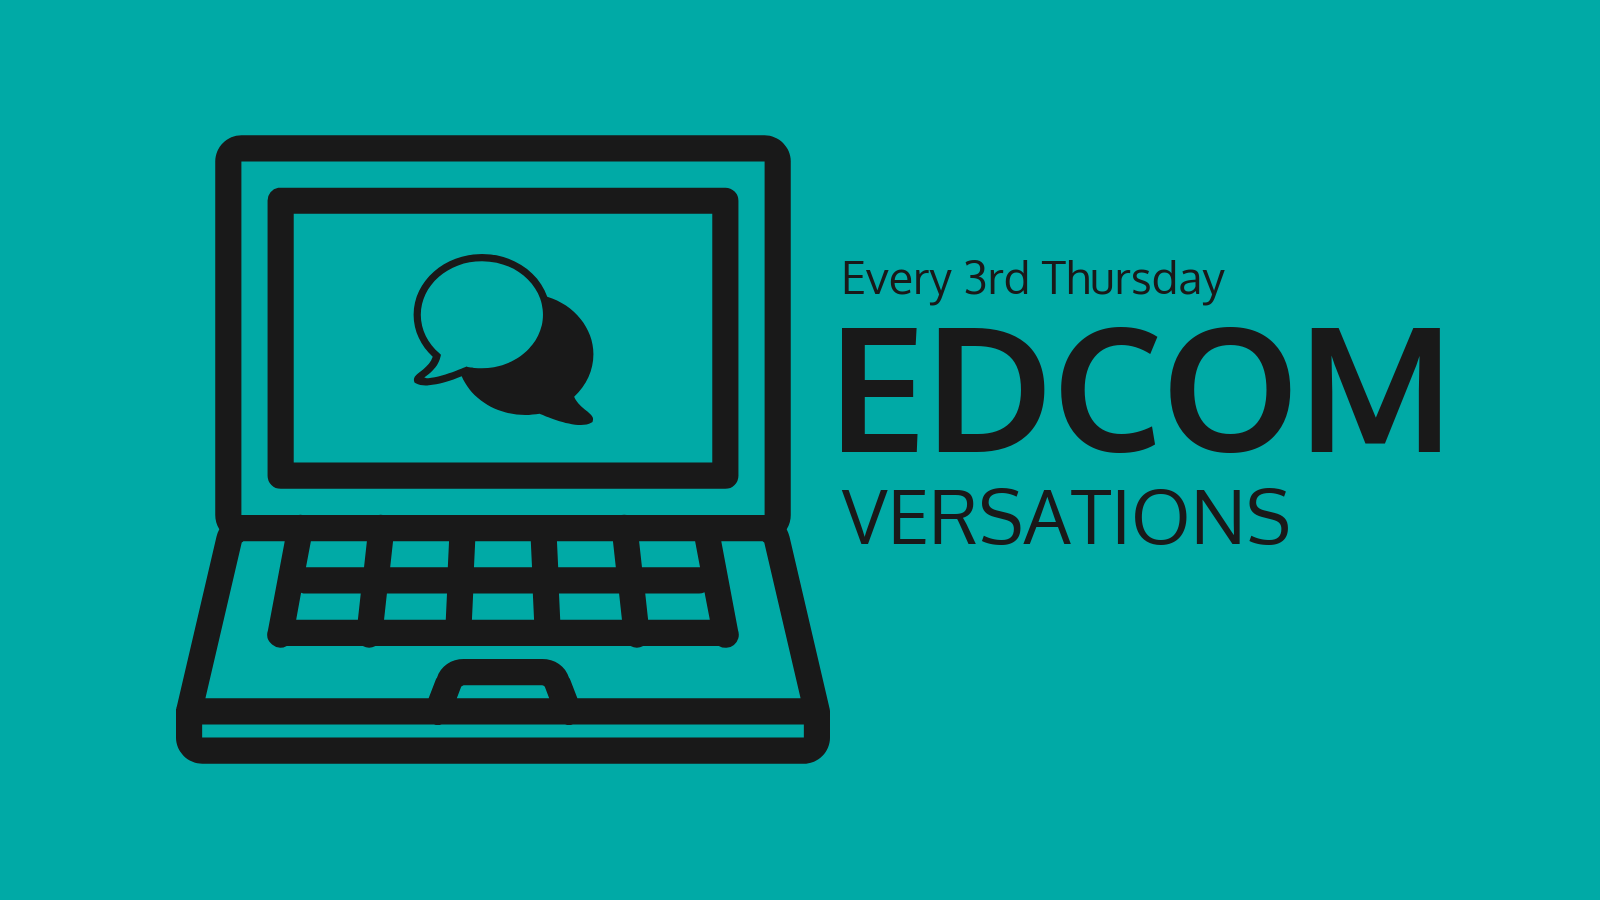 EDCOMversations occurs every 3rd Thursday. Image of a laptop with quote bubbles and title text.